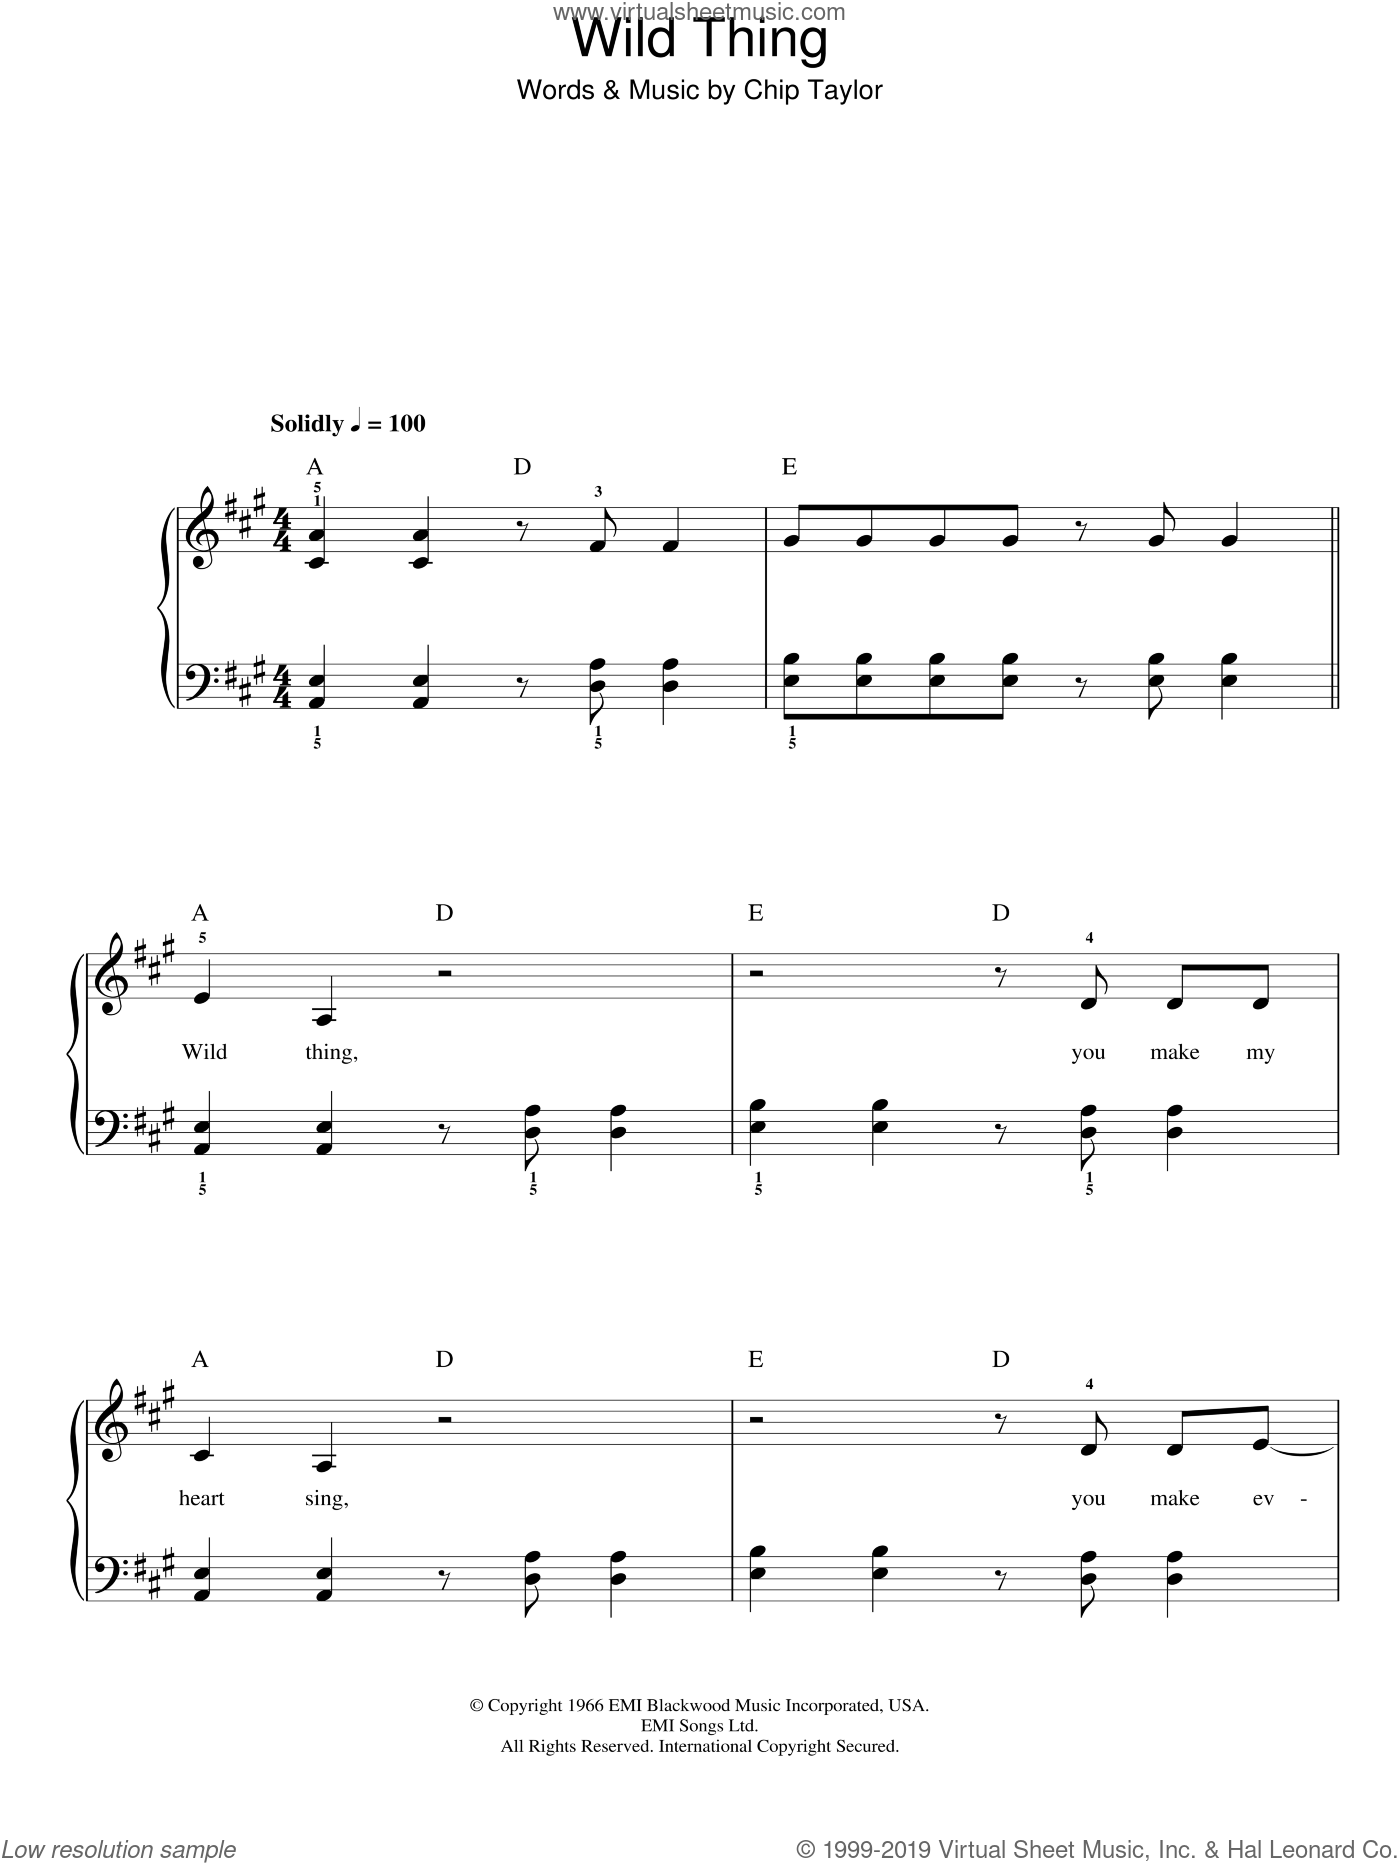 Wild Thing sheet music for piano solo (chords) by Chip Taylor